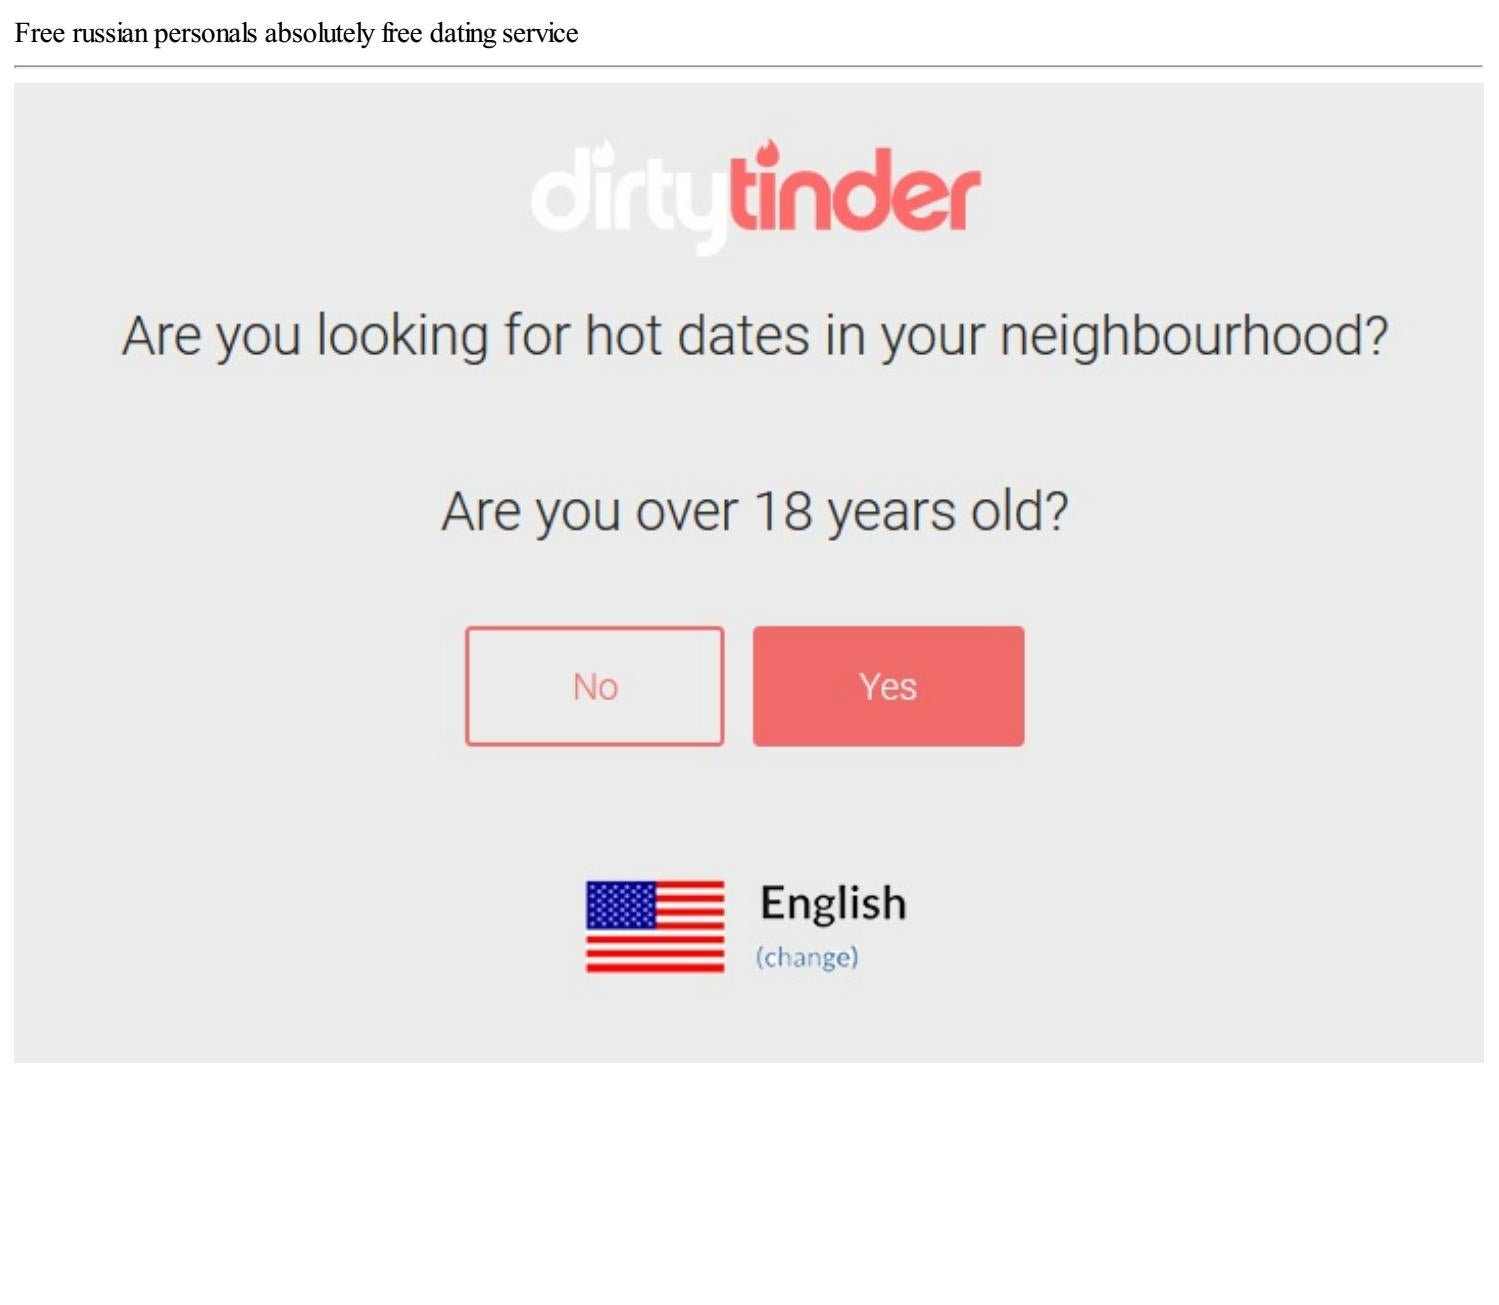 absolutely free dating service